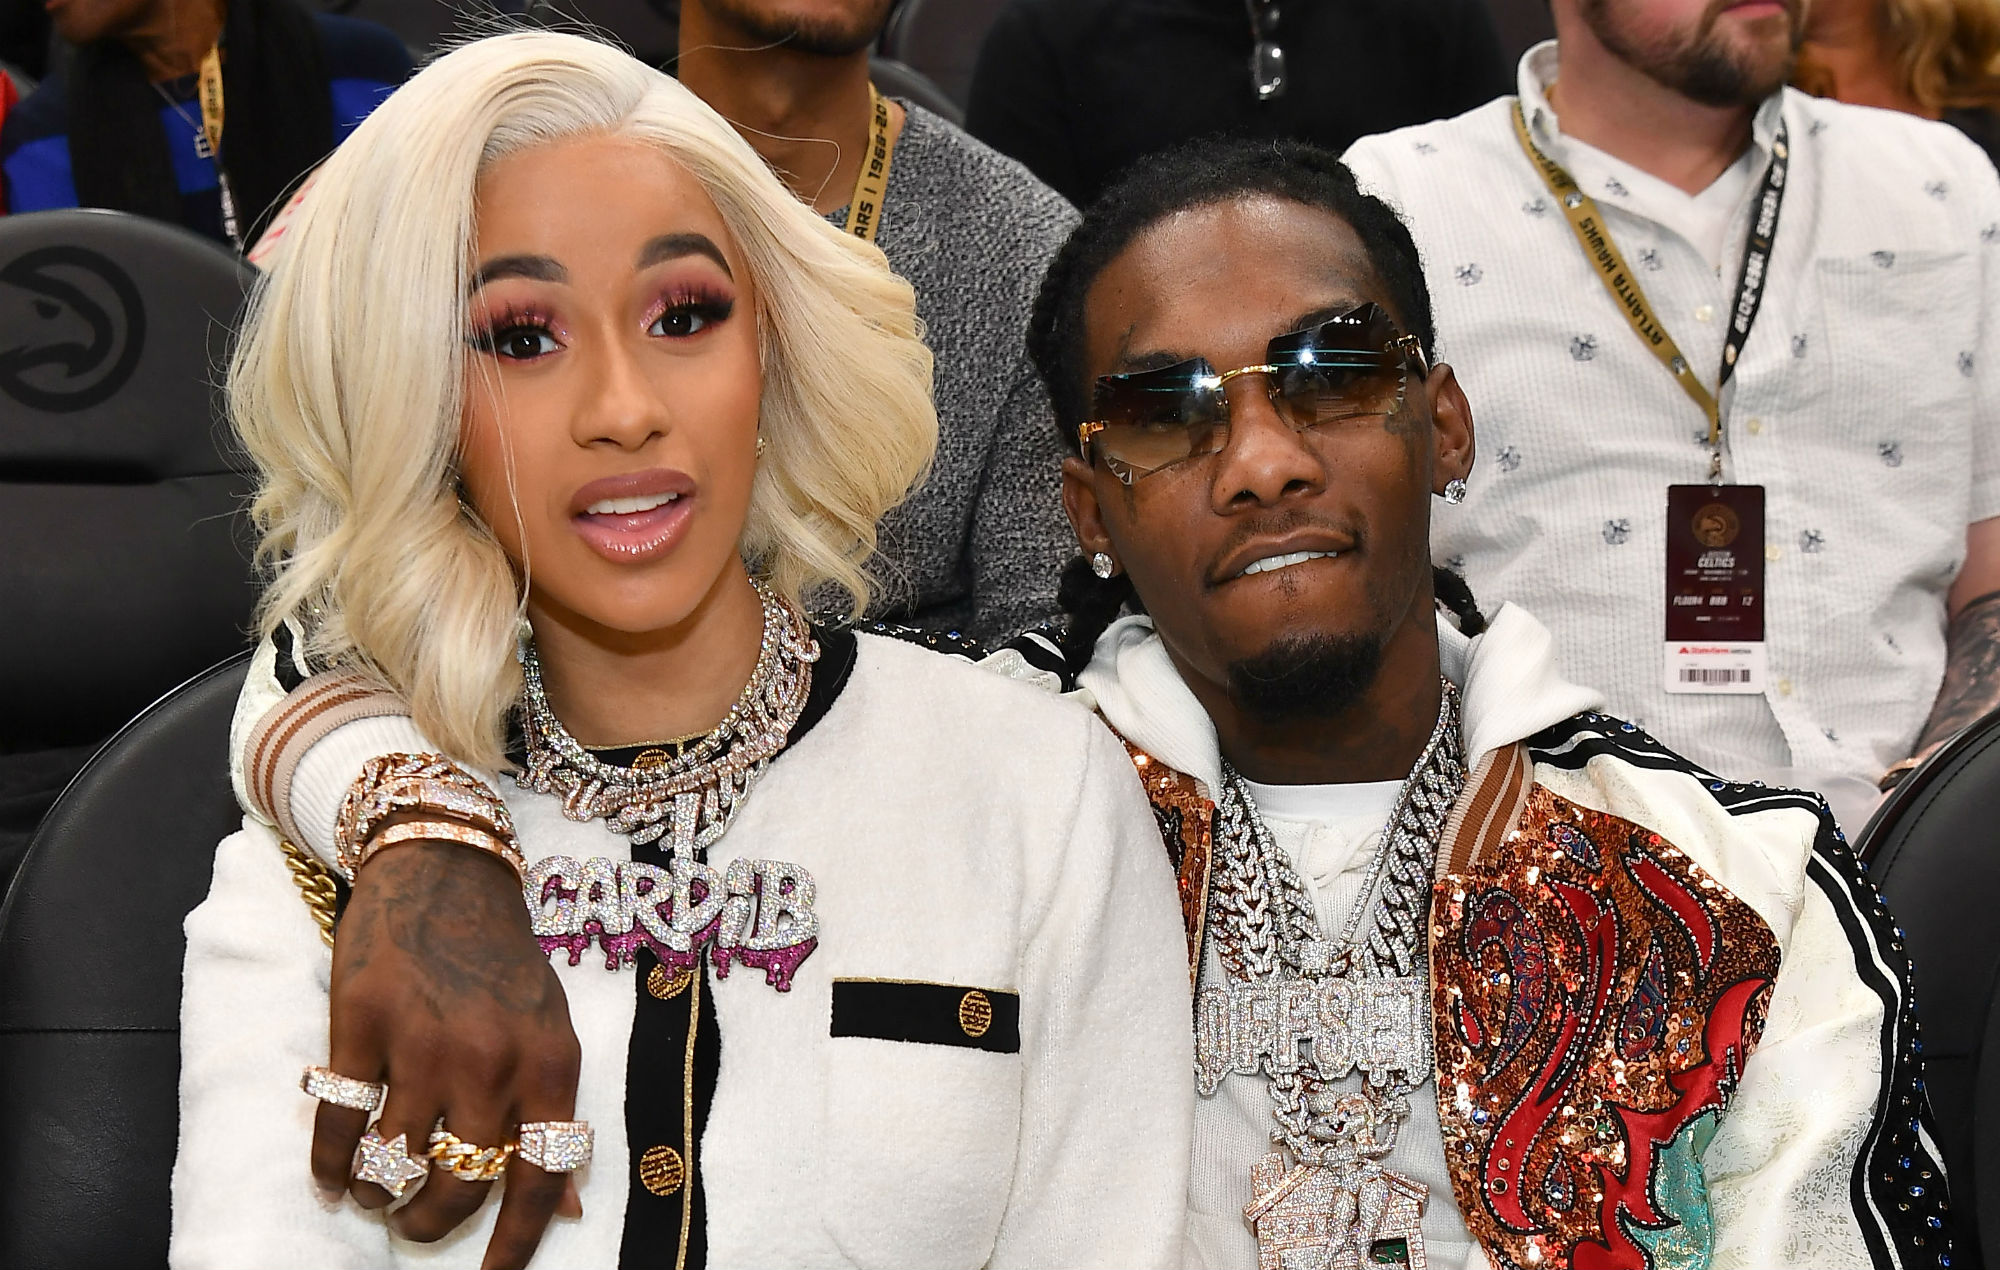 Cardi B Reveals Huge Offset Tattoo Of Husband S Name On: Cardi B Announces Separation From Migos' Offset After A